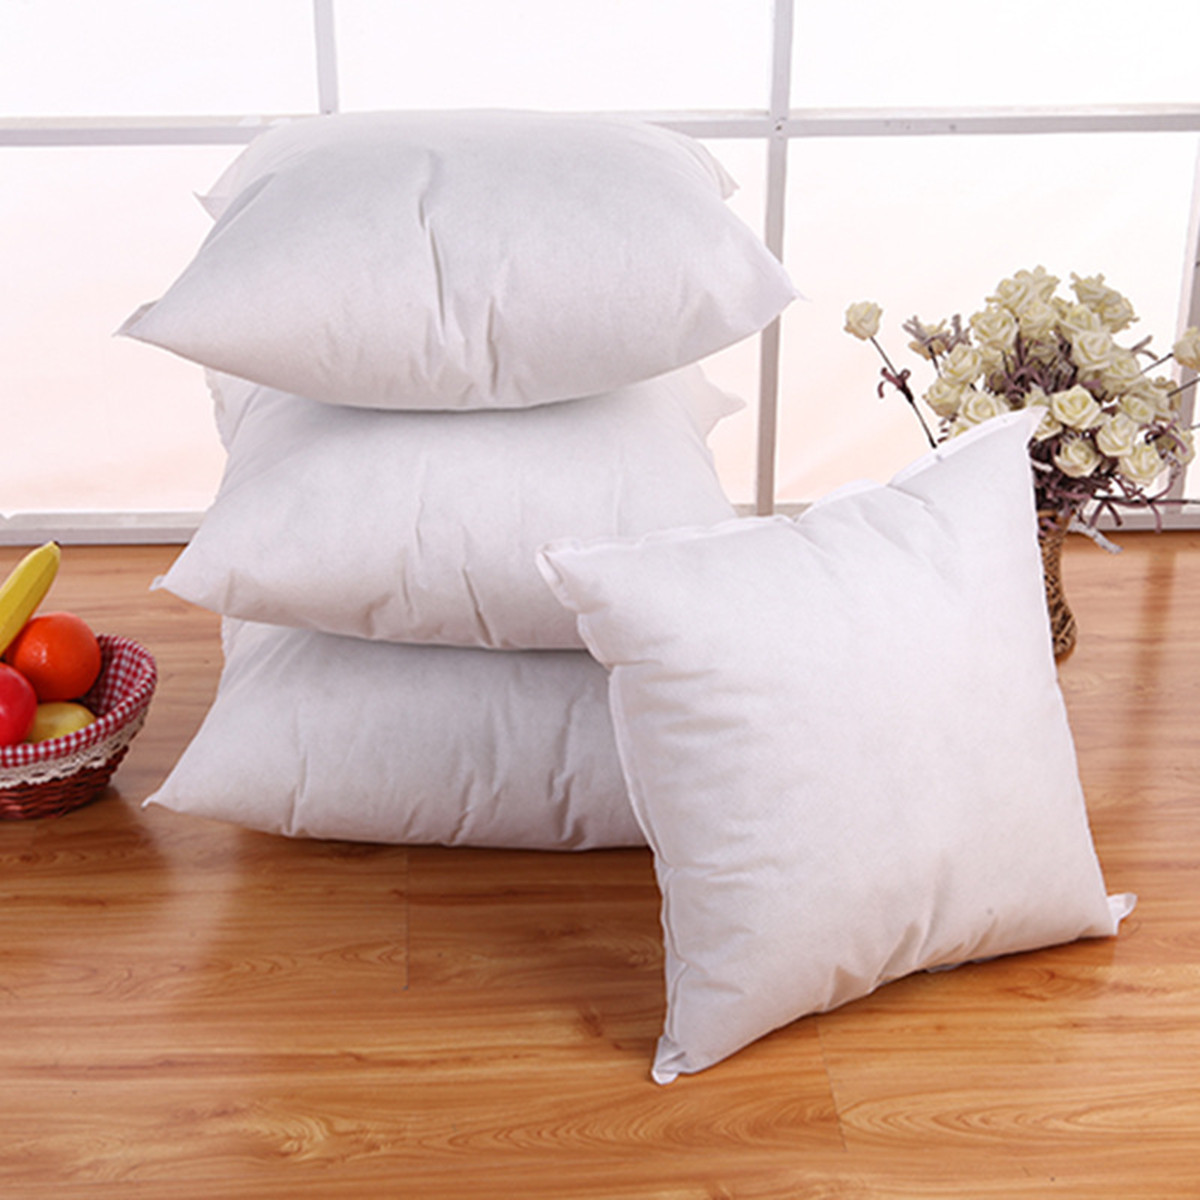 Square White Throw Cushion Pillow Insert Car Seat Waist Pillowcase Inner Filler PP Cotton Filling 5 Size 35 40 45 50 55cm